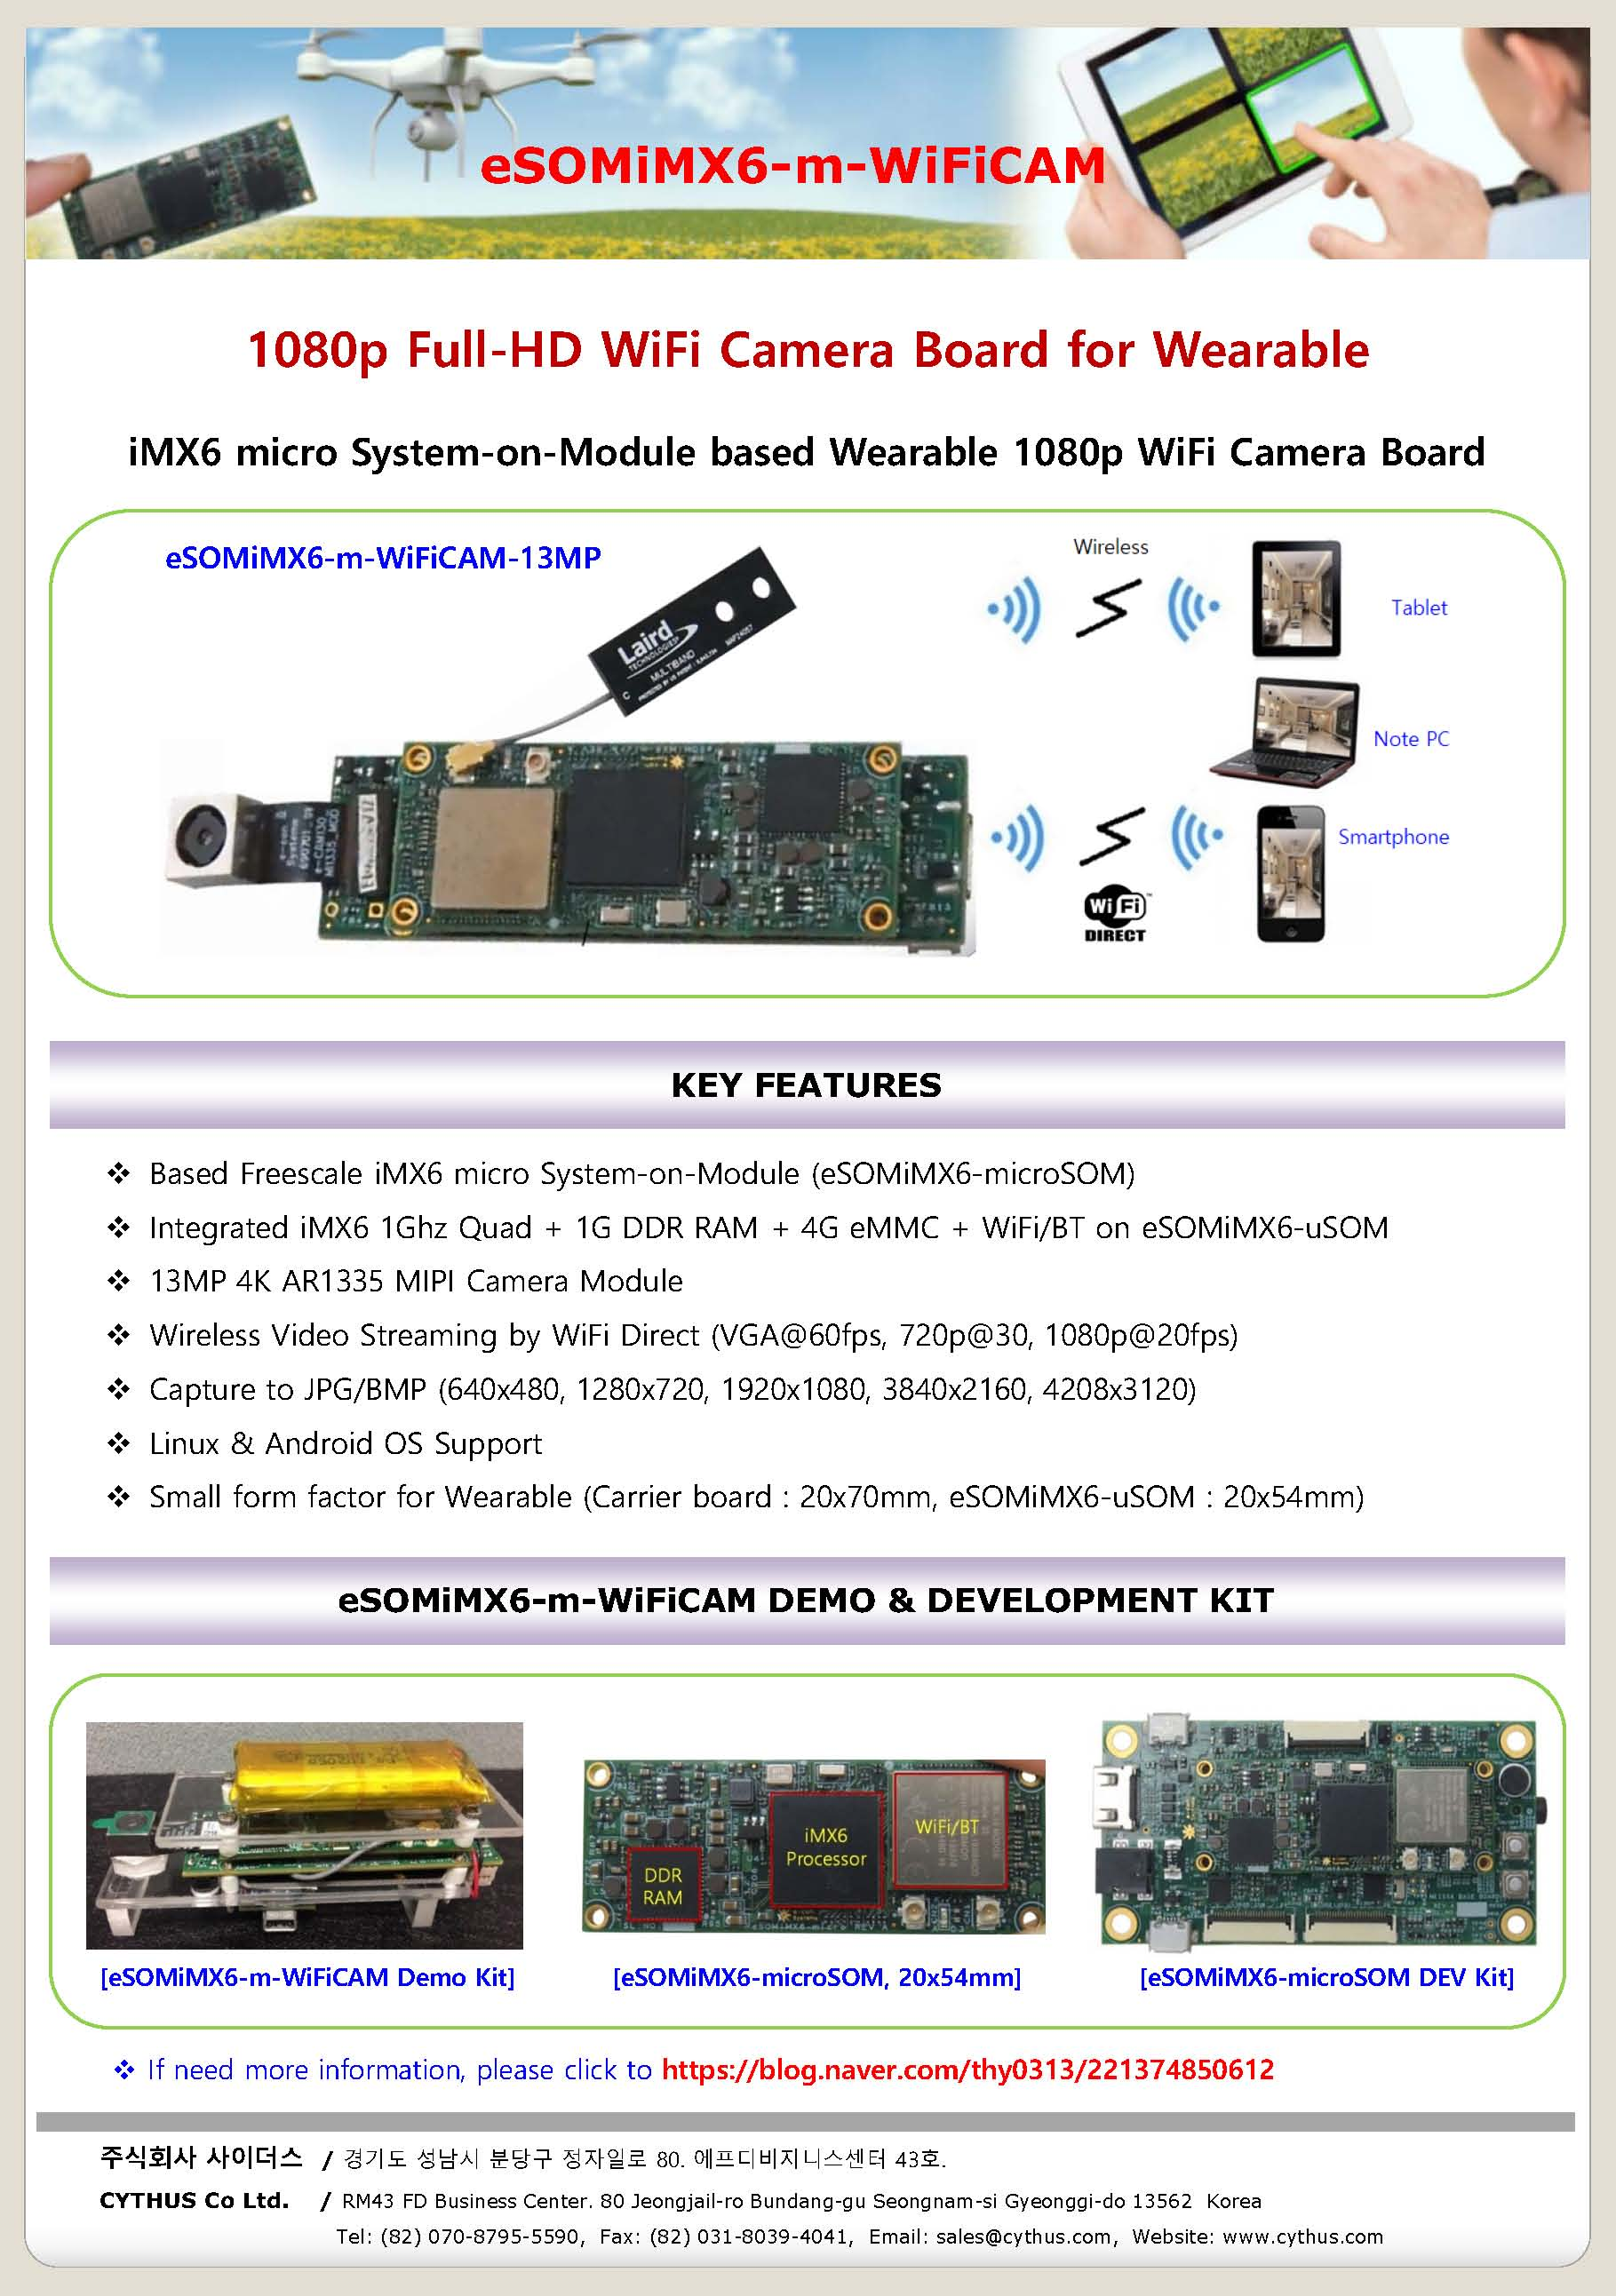 1080p WiFi Camera Board – eSOMiMX6-m-WiFiCAM – Welcome to CYTHUS